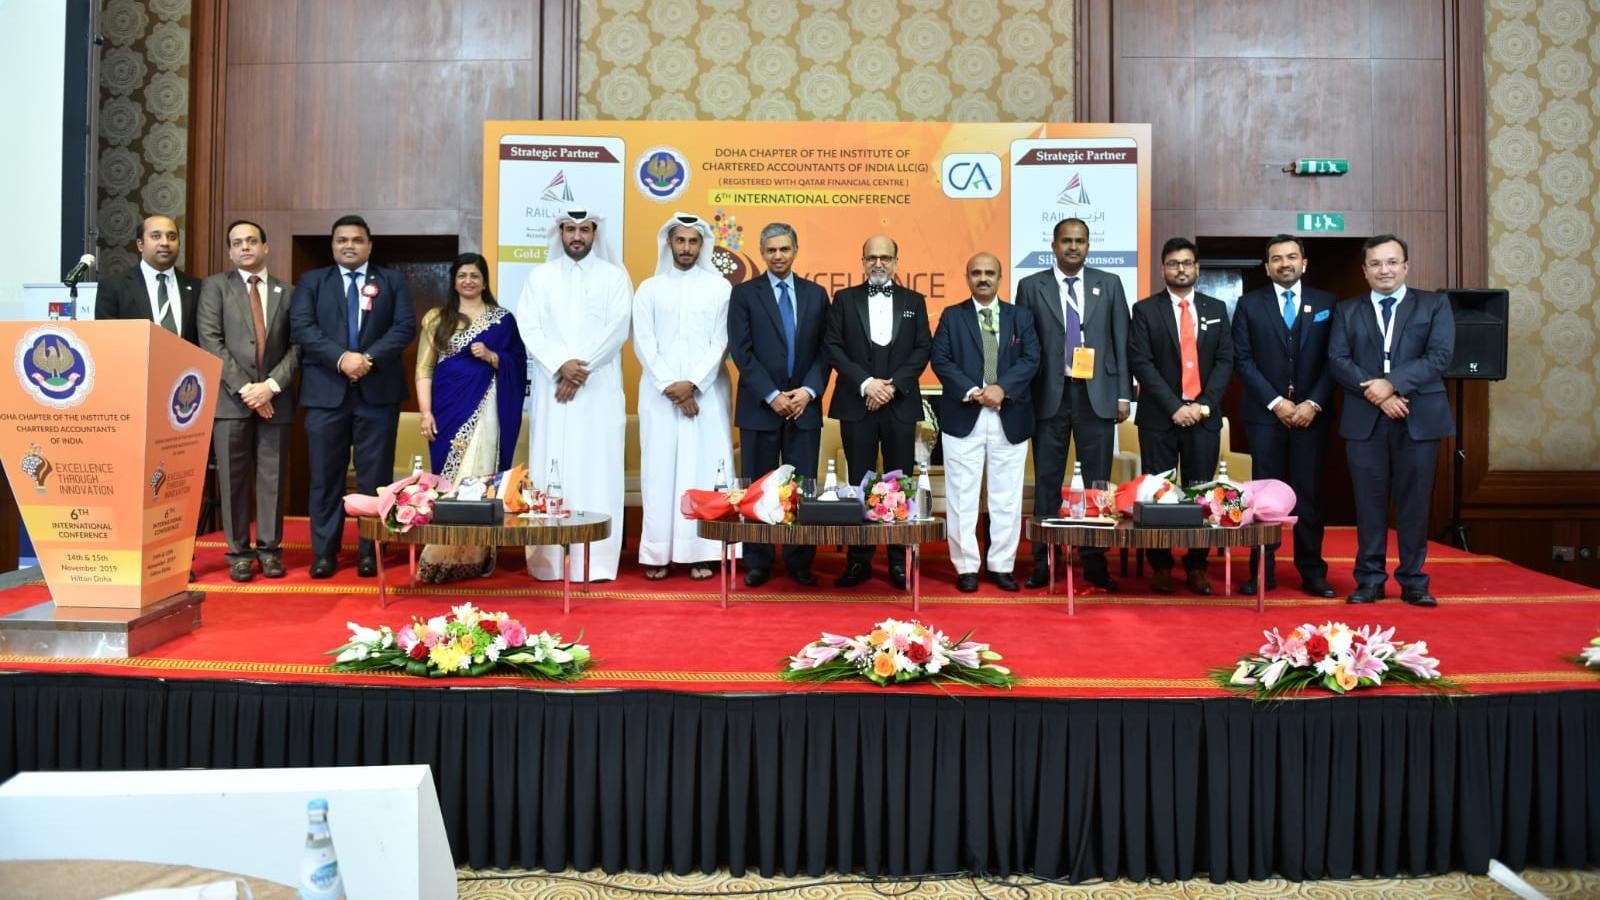 """Doha Chapter of ICAI organizes 6th International Conference on 'Excellence Through Innovation"""""""